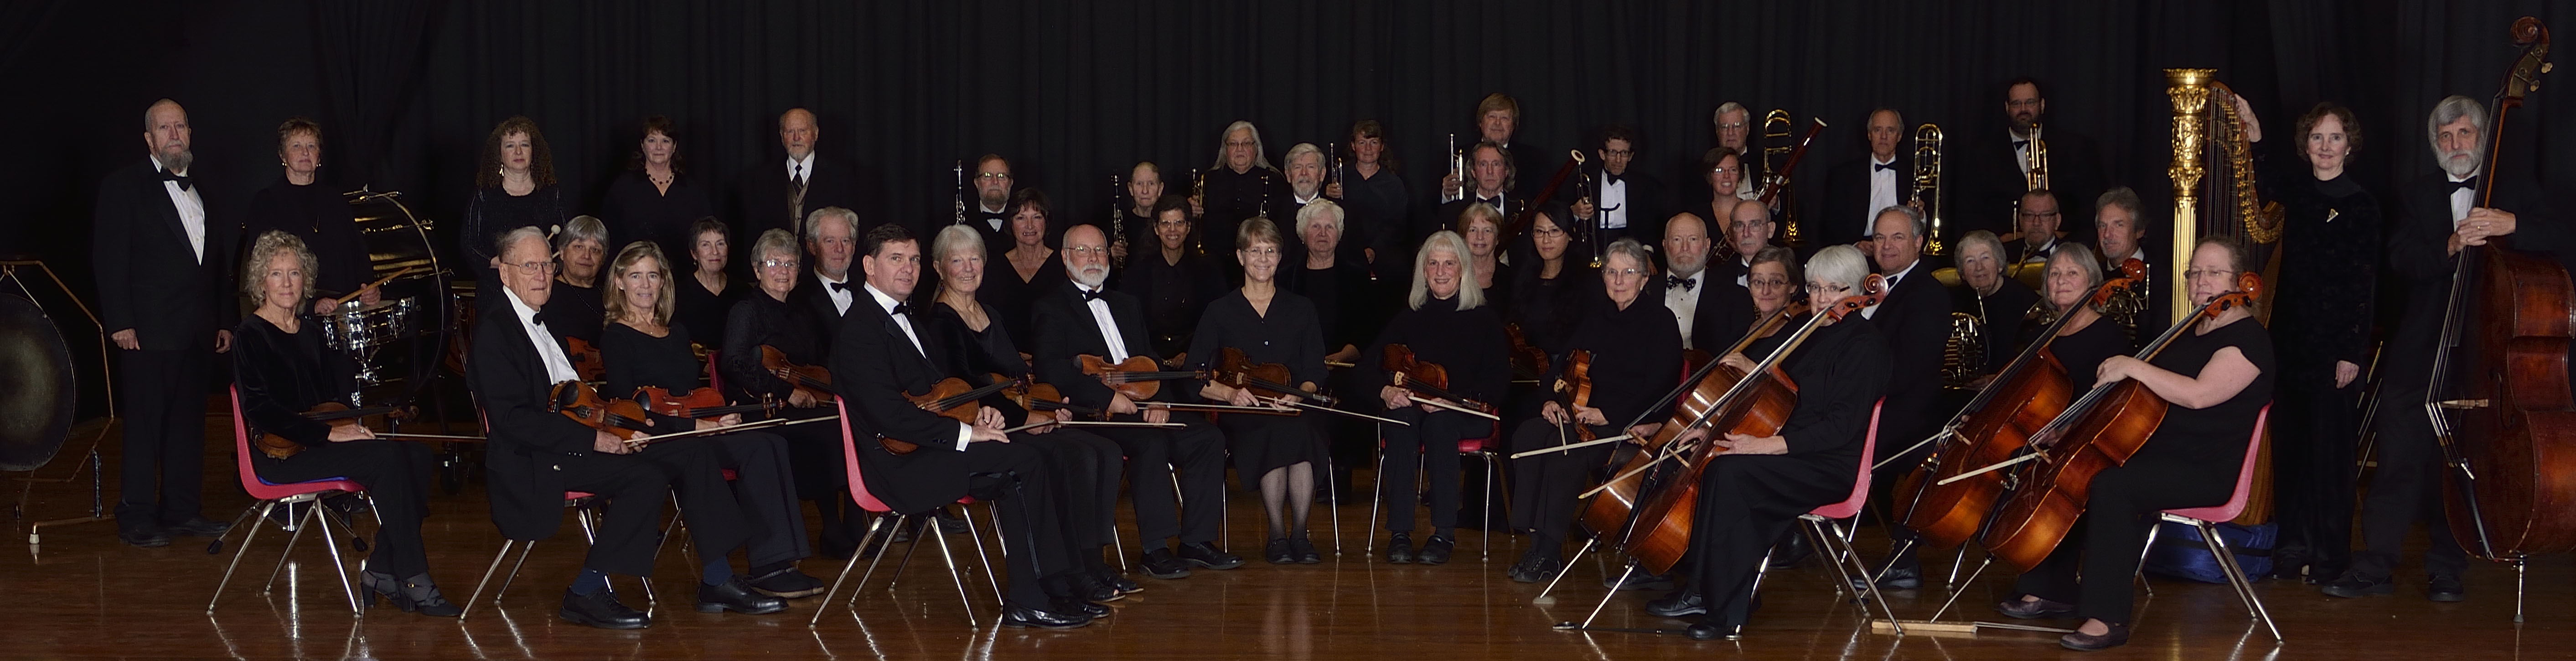 Port Townsend Community Orchestra, October 2015.